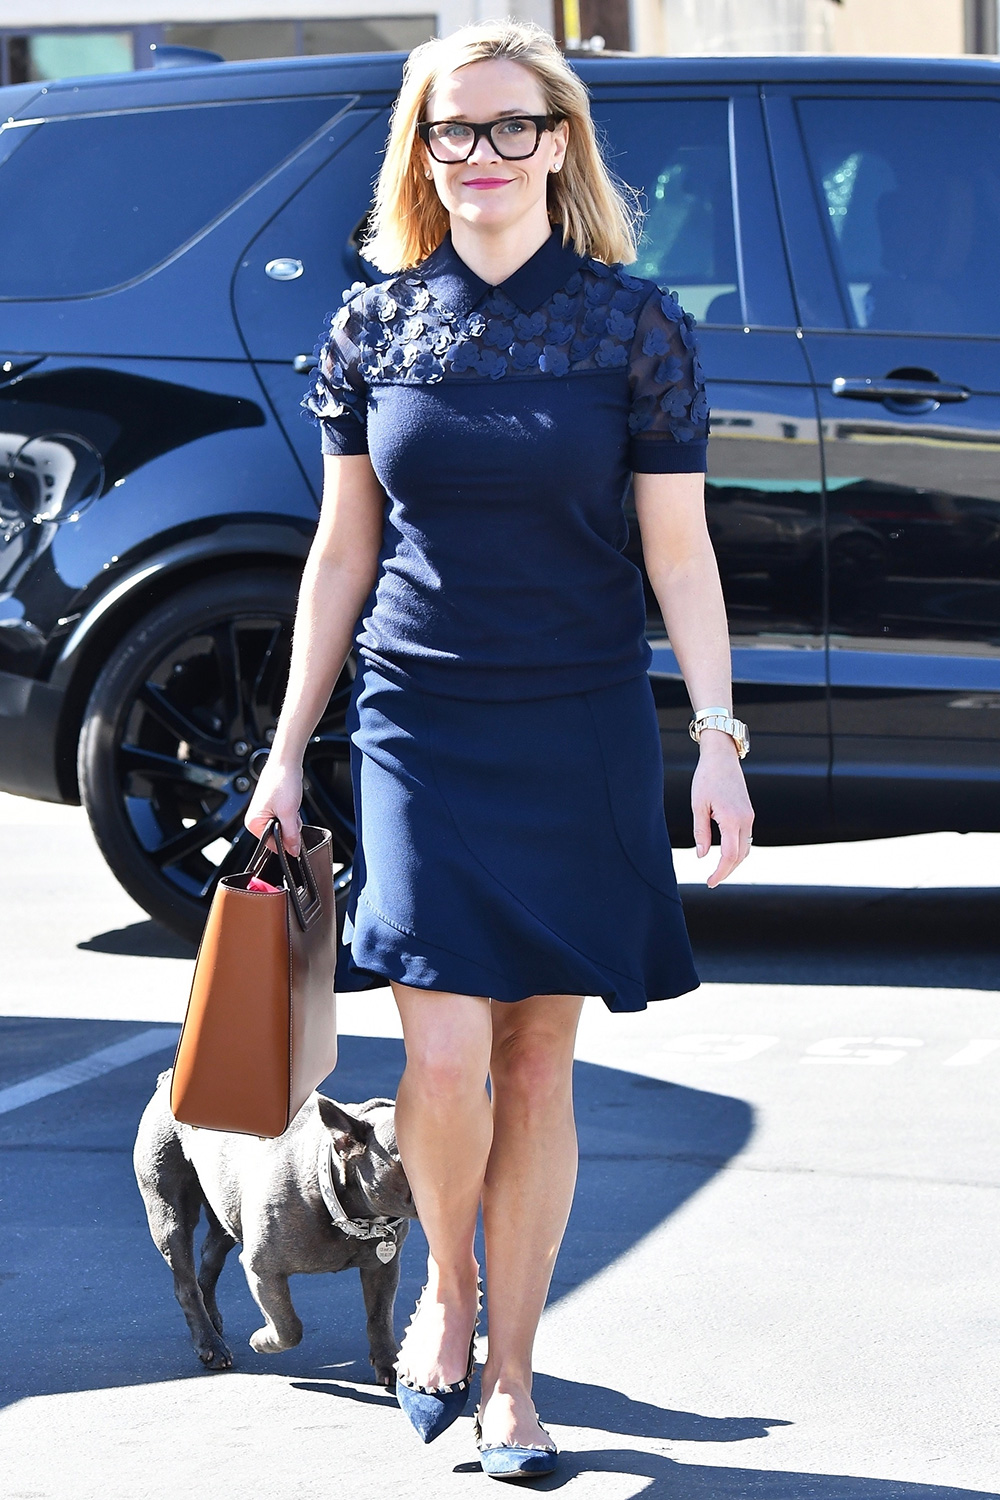 Reese opted for a different look as she is seen wearing black framed glasses with a dark blue dress and matching flats. Reese decided to bring her dog to the office to keep her company.